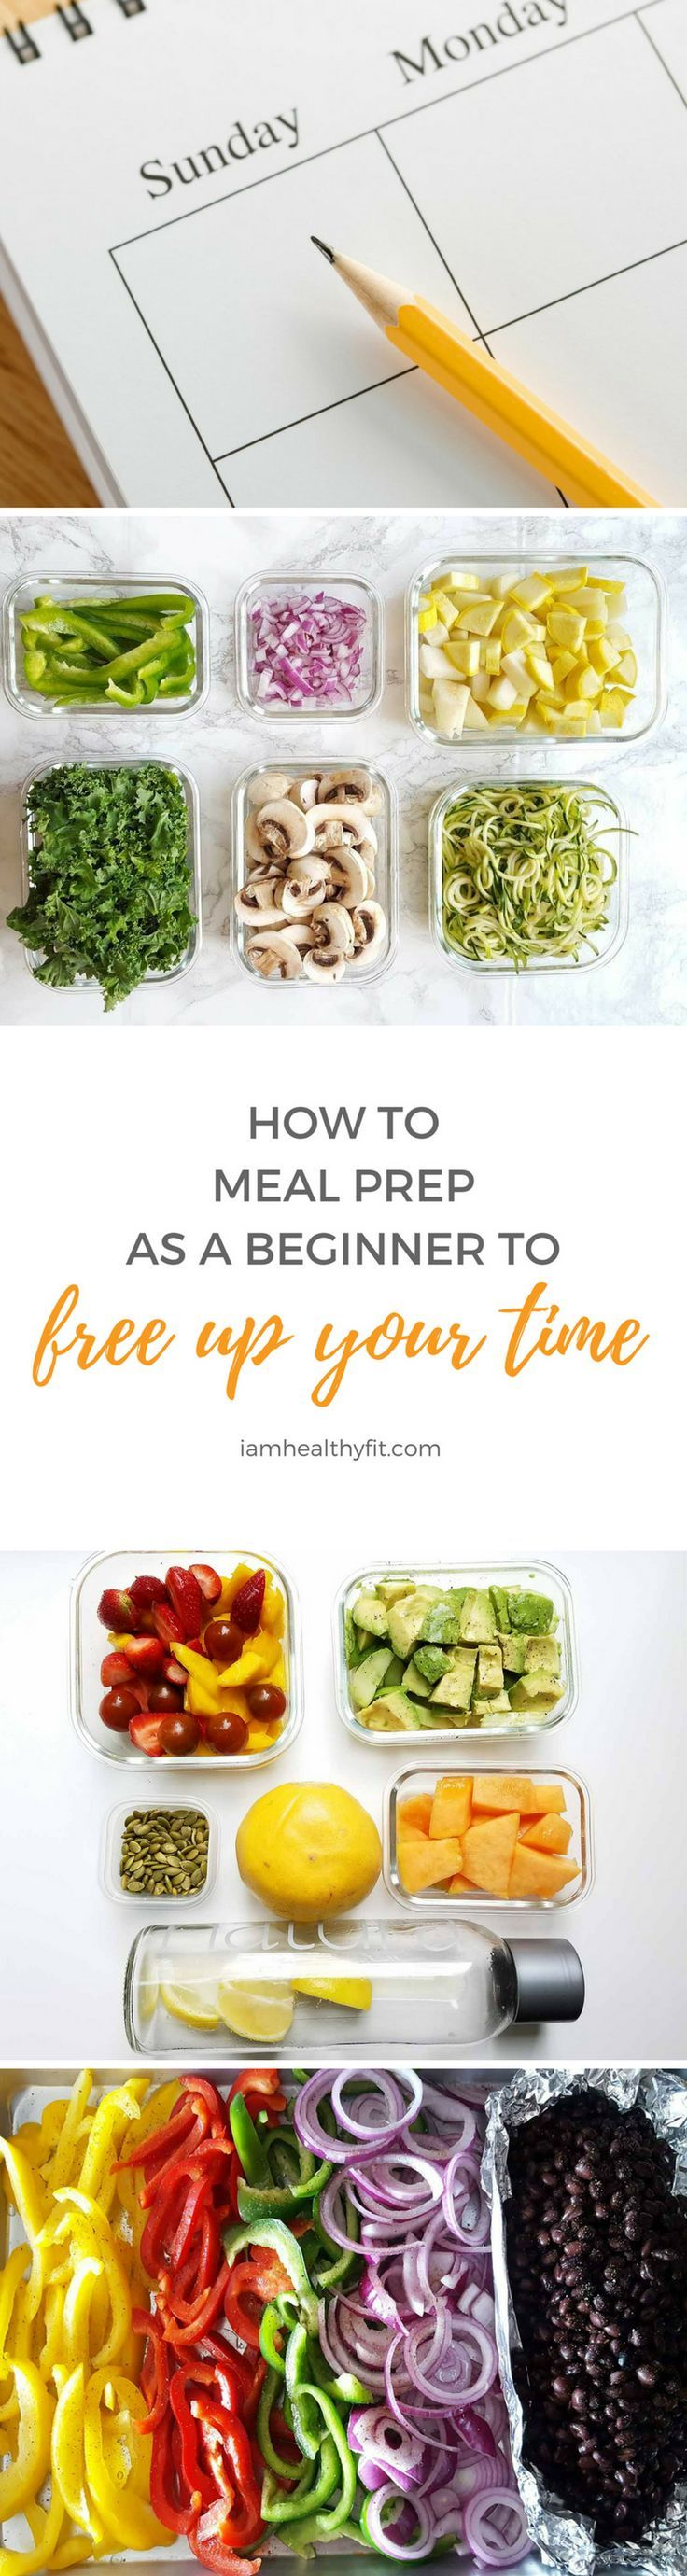 Plan your meals to get more metime for yourself.. invest in yourself and make time to do things you always wanted to. take control of your life